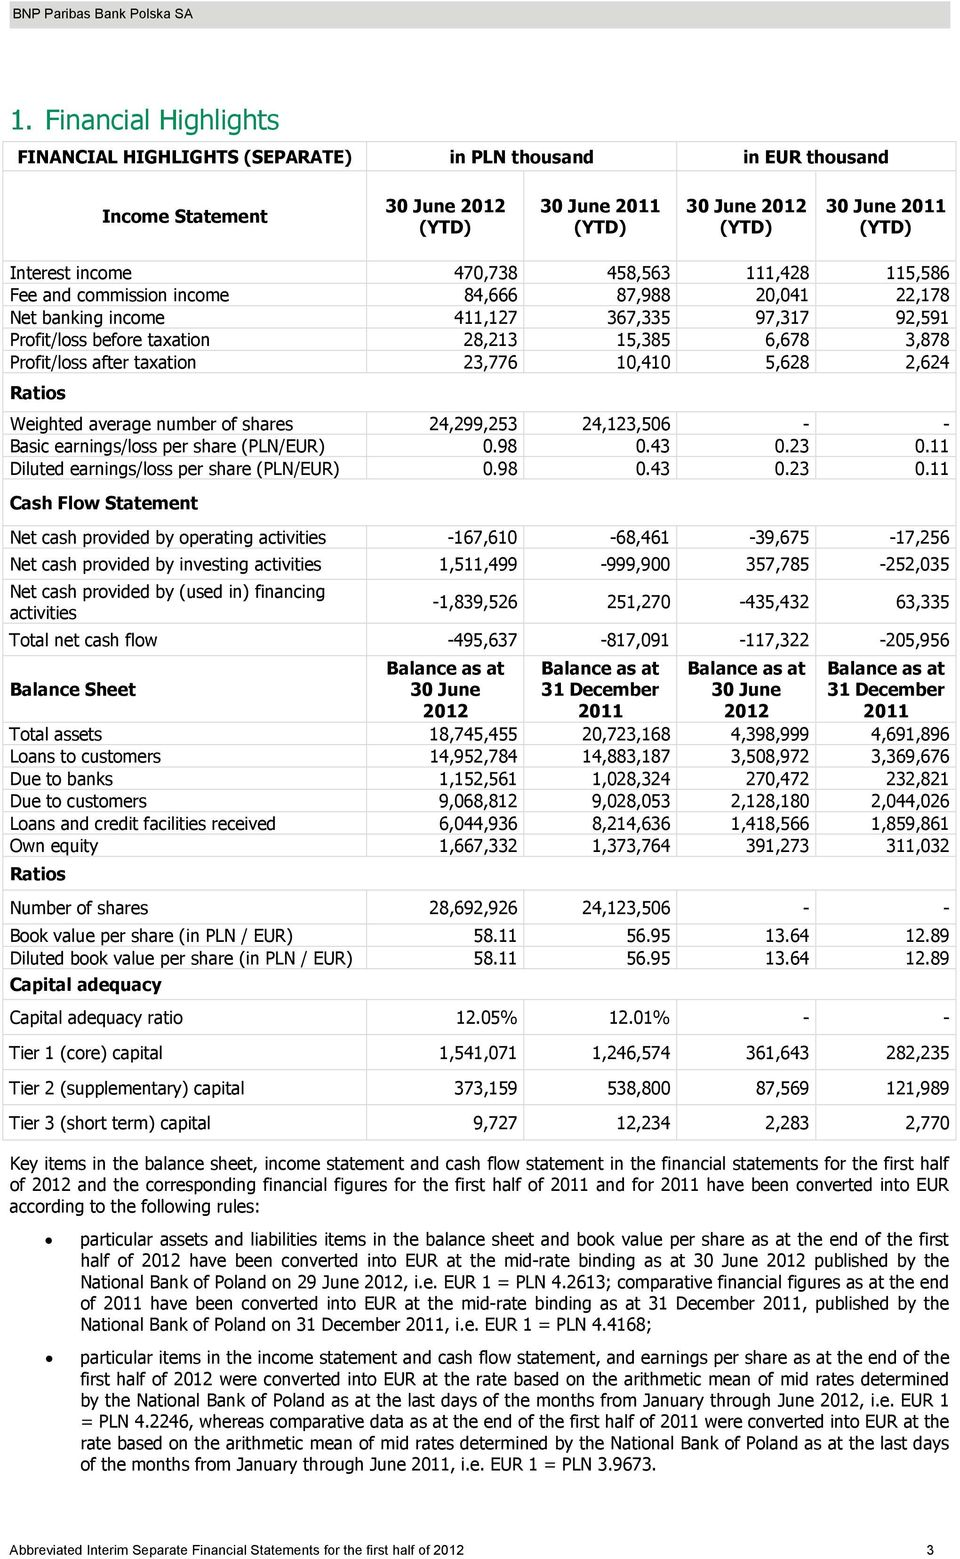 Weighted average number of shares 24,299,253 24,123,506 - - Basic earnings/loss per share (PLN/EUR) 0.98 0.43 0.23 0.